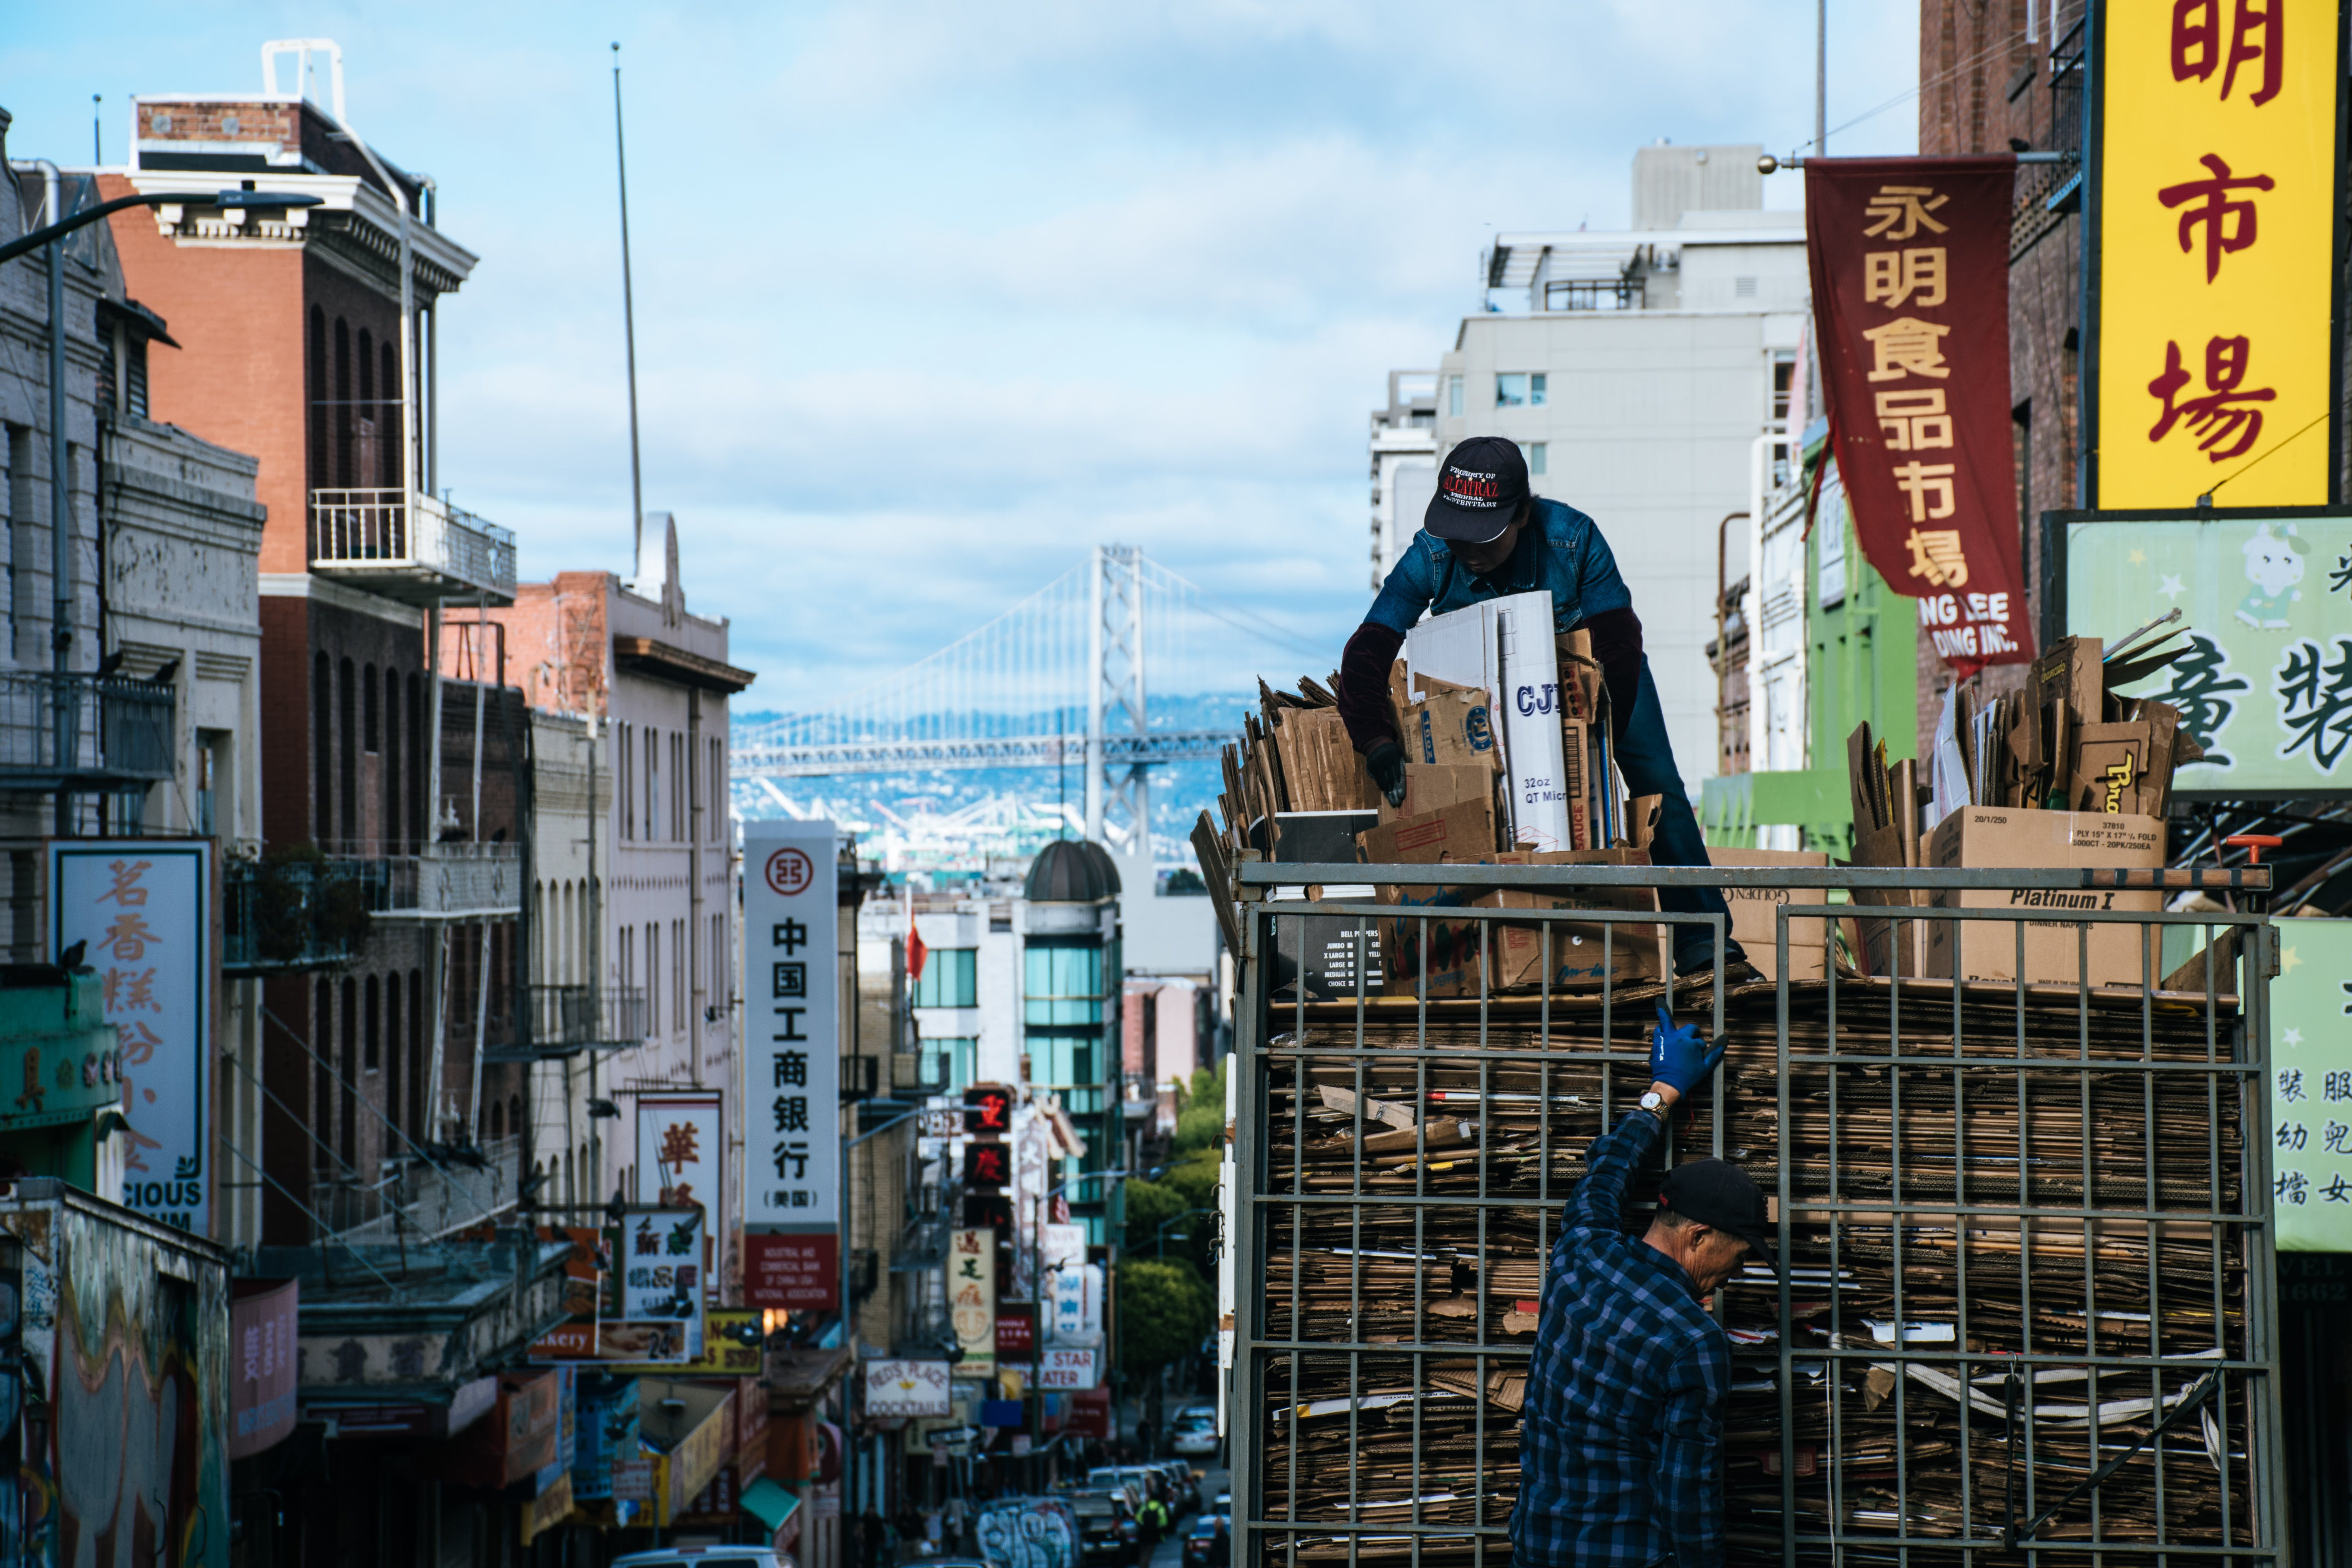 Man on Top of Truck Arranging Brown Cardboard Boxes